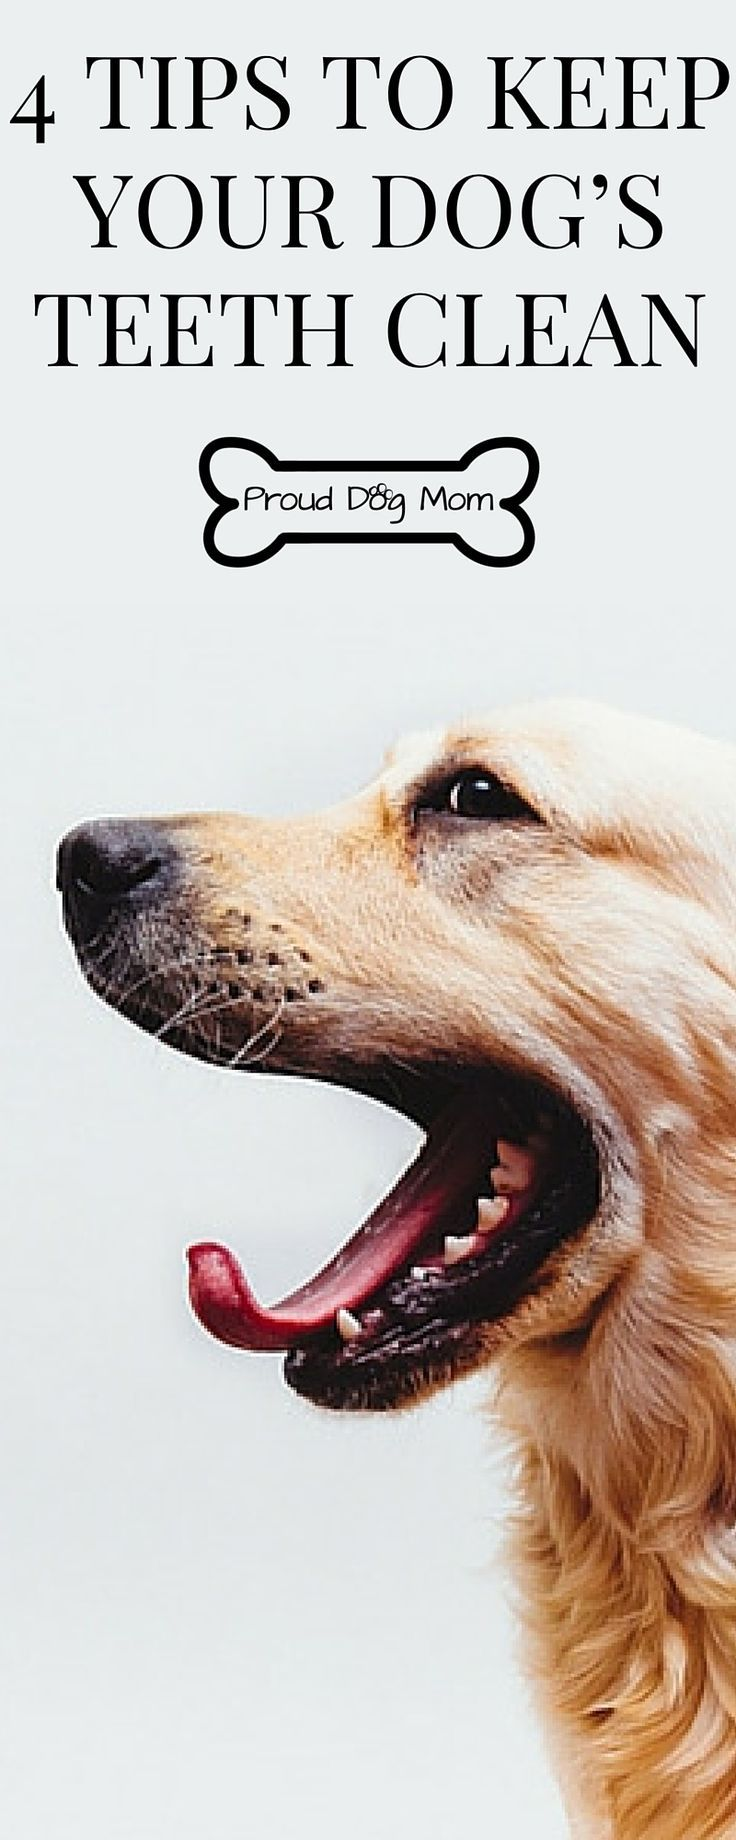 4 tips to keep your dogs teeth clean dog teeth cleaning